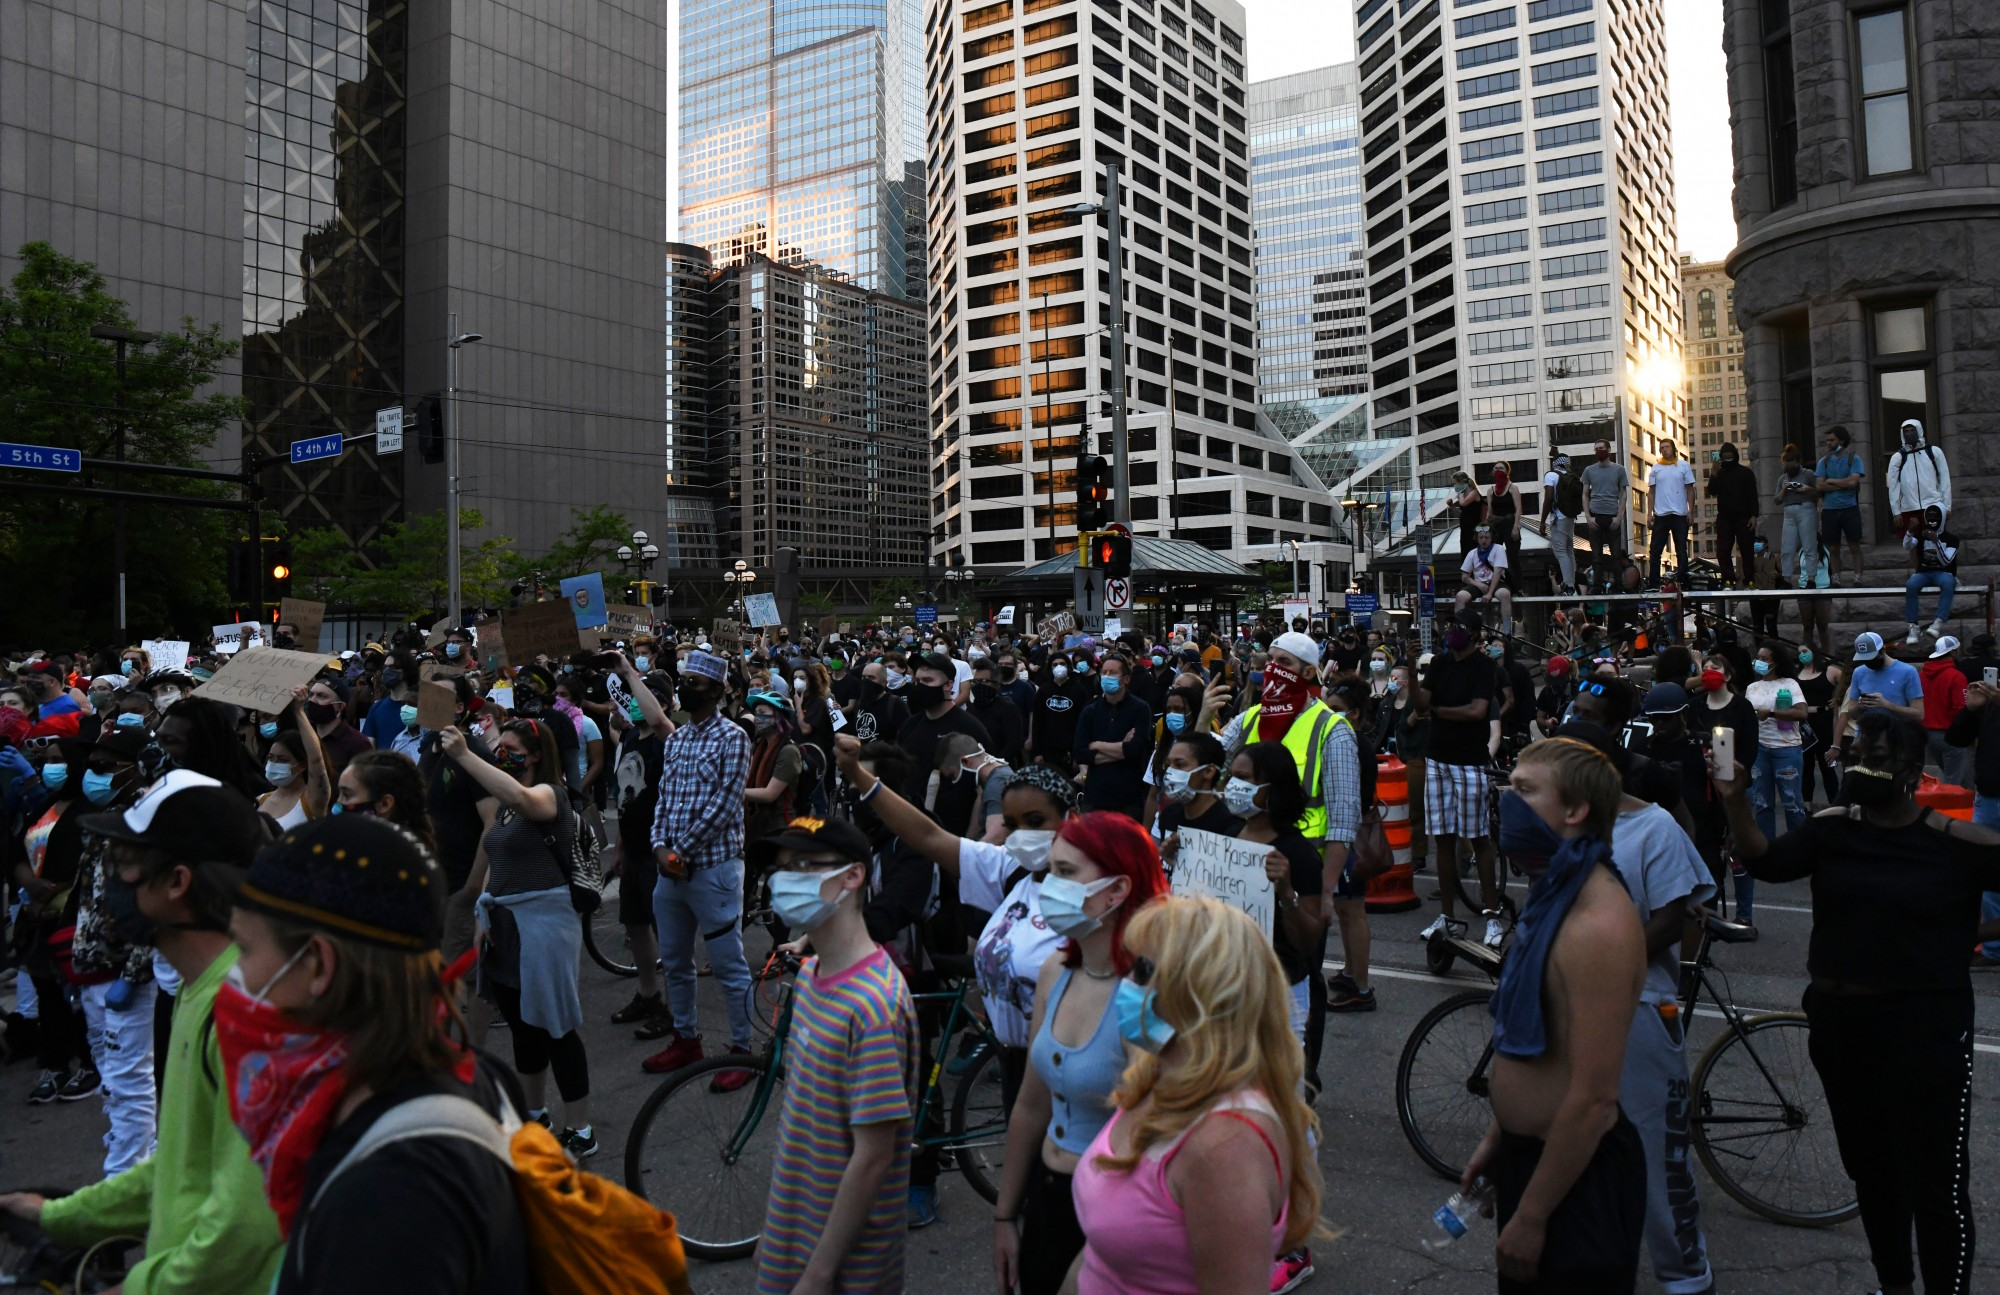 Demonstrators gather in Government Plaza in Minneapolis on Thursday, May 28.